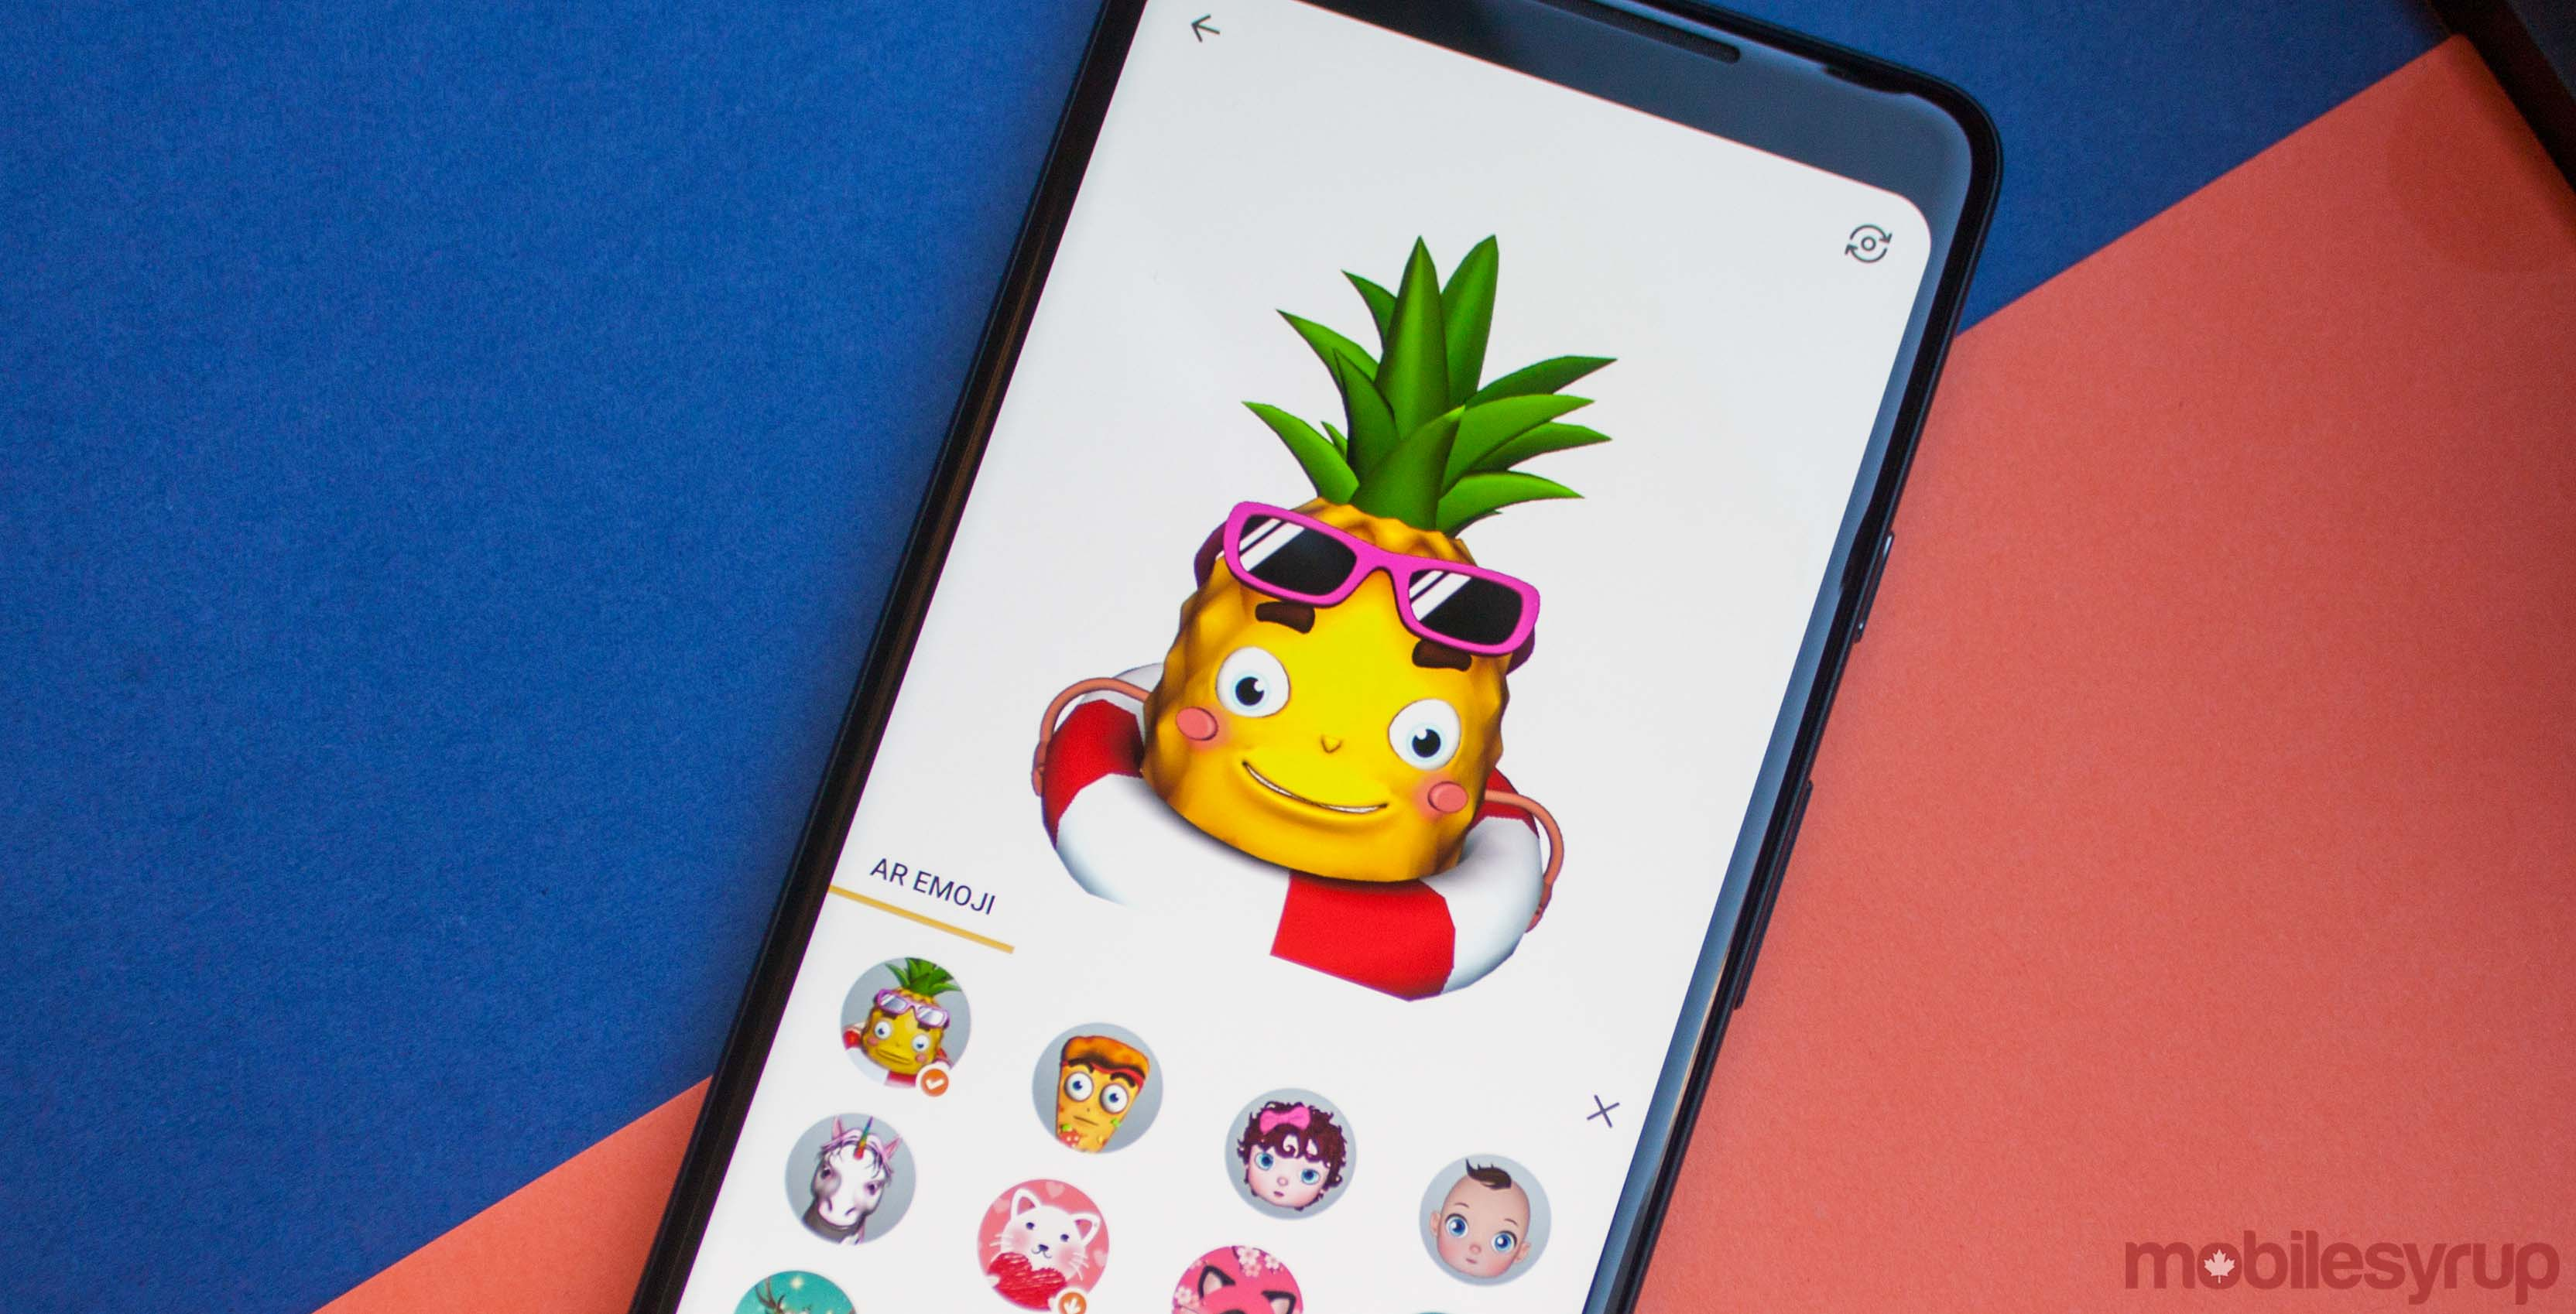 Facemoji Lets Any Android Phone Use Animated Ar Emoji 3 Way Switch Animation Pineapple On Keyboard